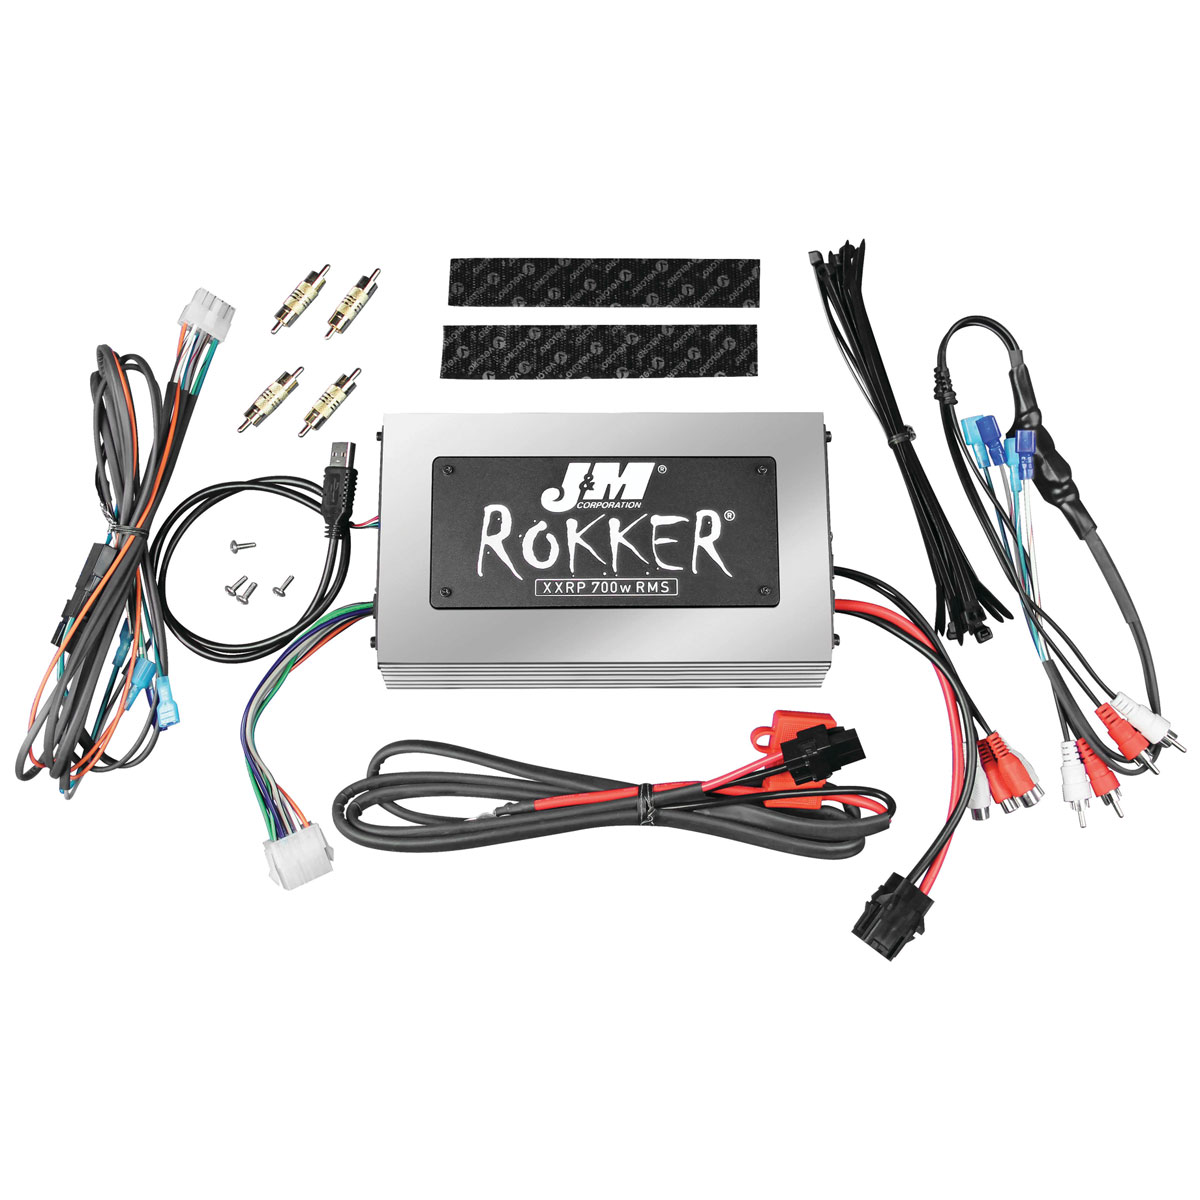 J&M Rokker XXRP 700W Amplifier Kit - JAMP-700HD98-UNV